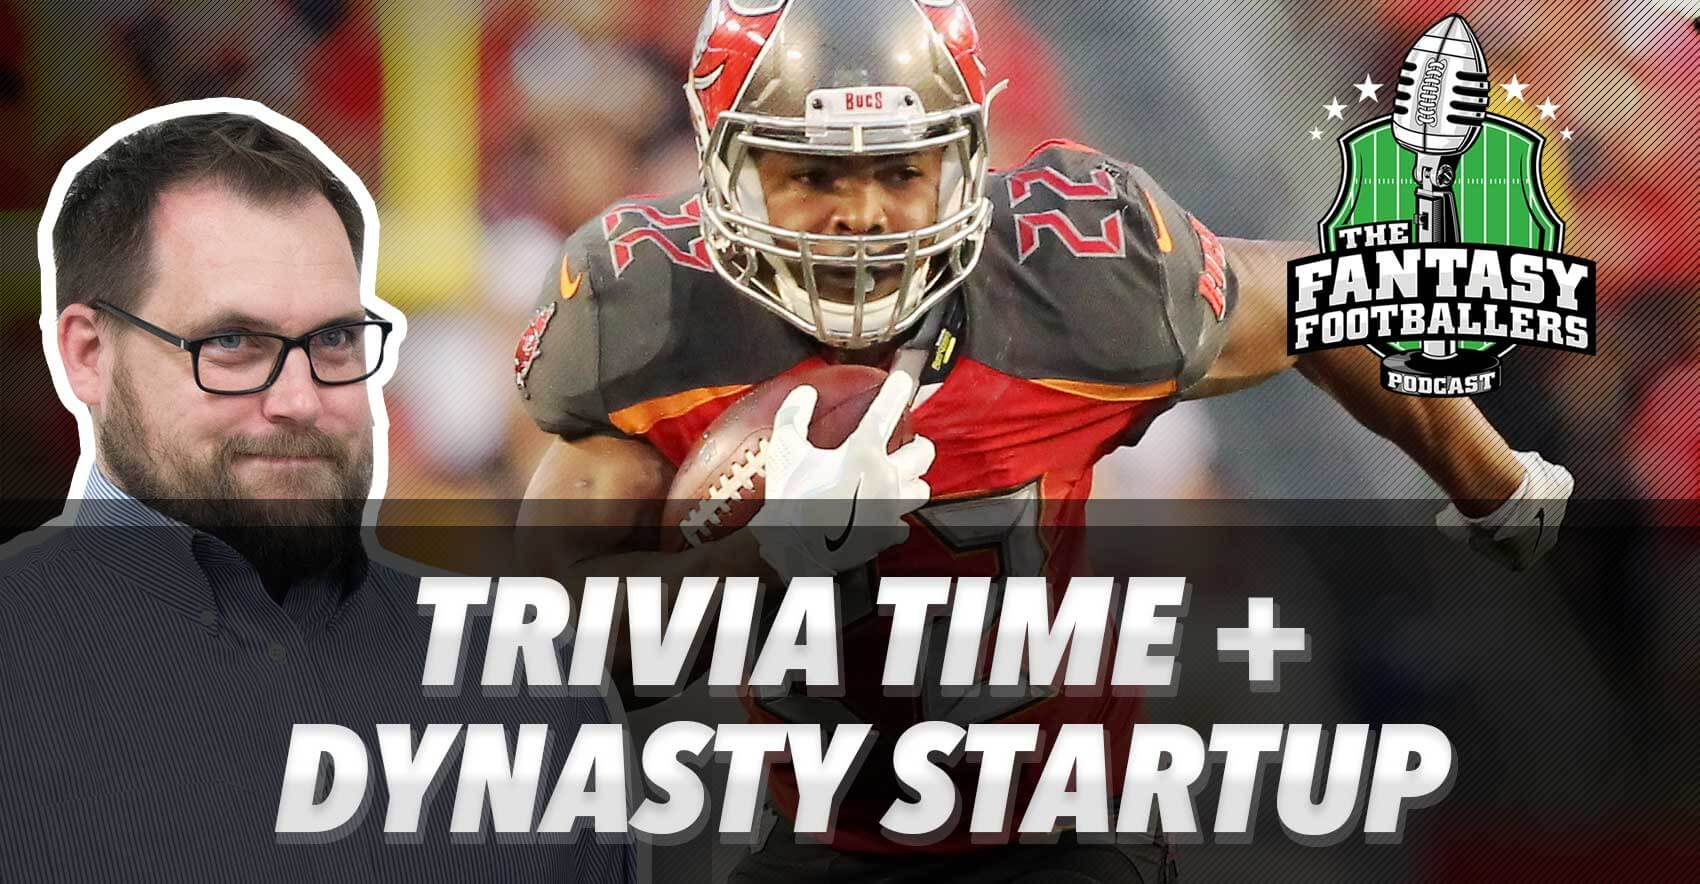 Trivia Time, Dynasty Startup, Krampus Released - Ep. #525